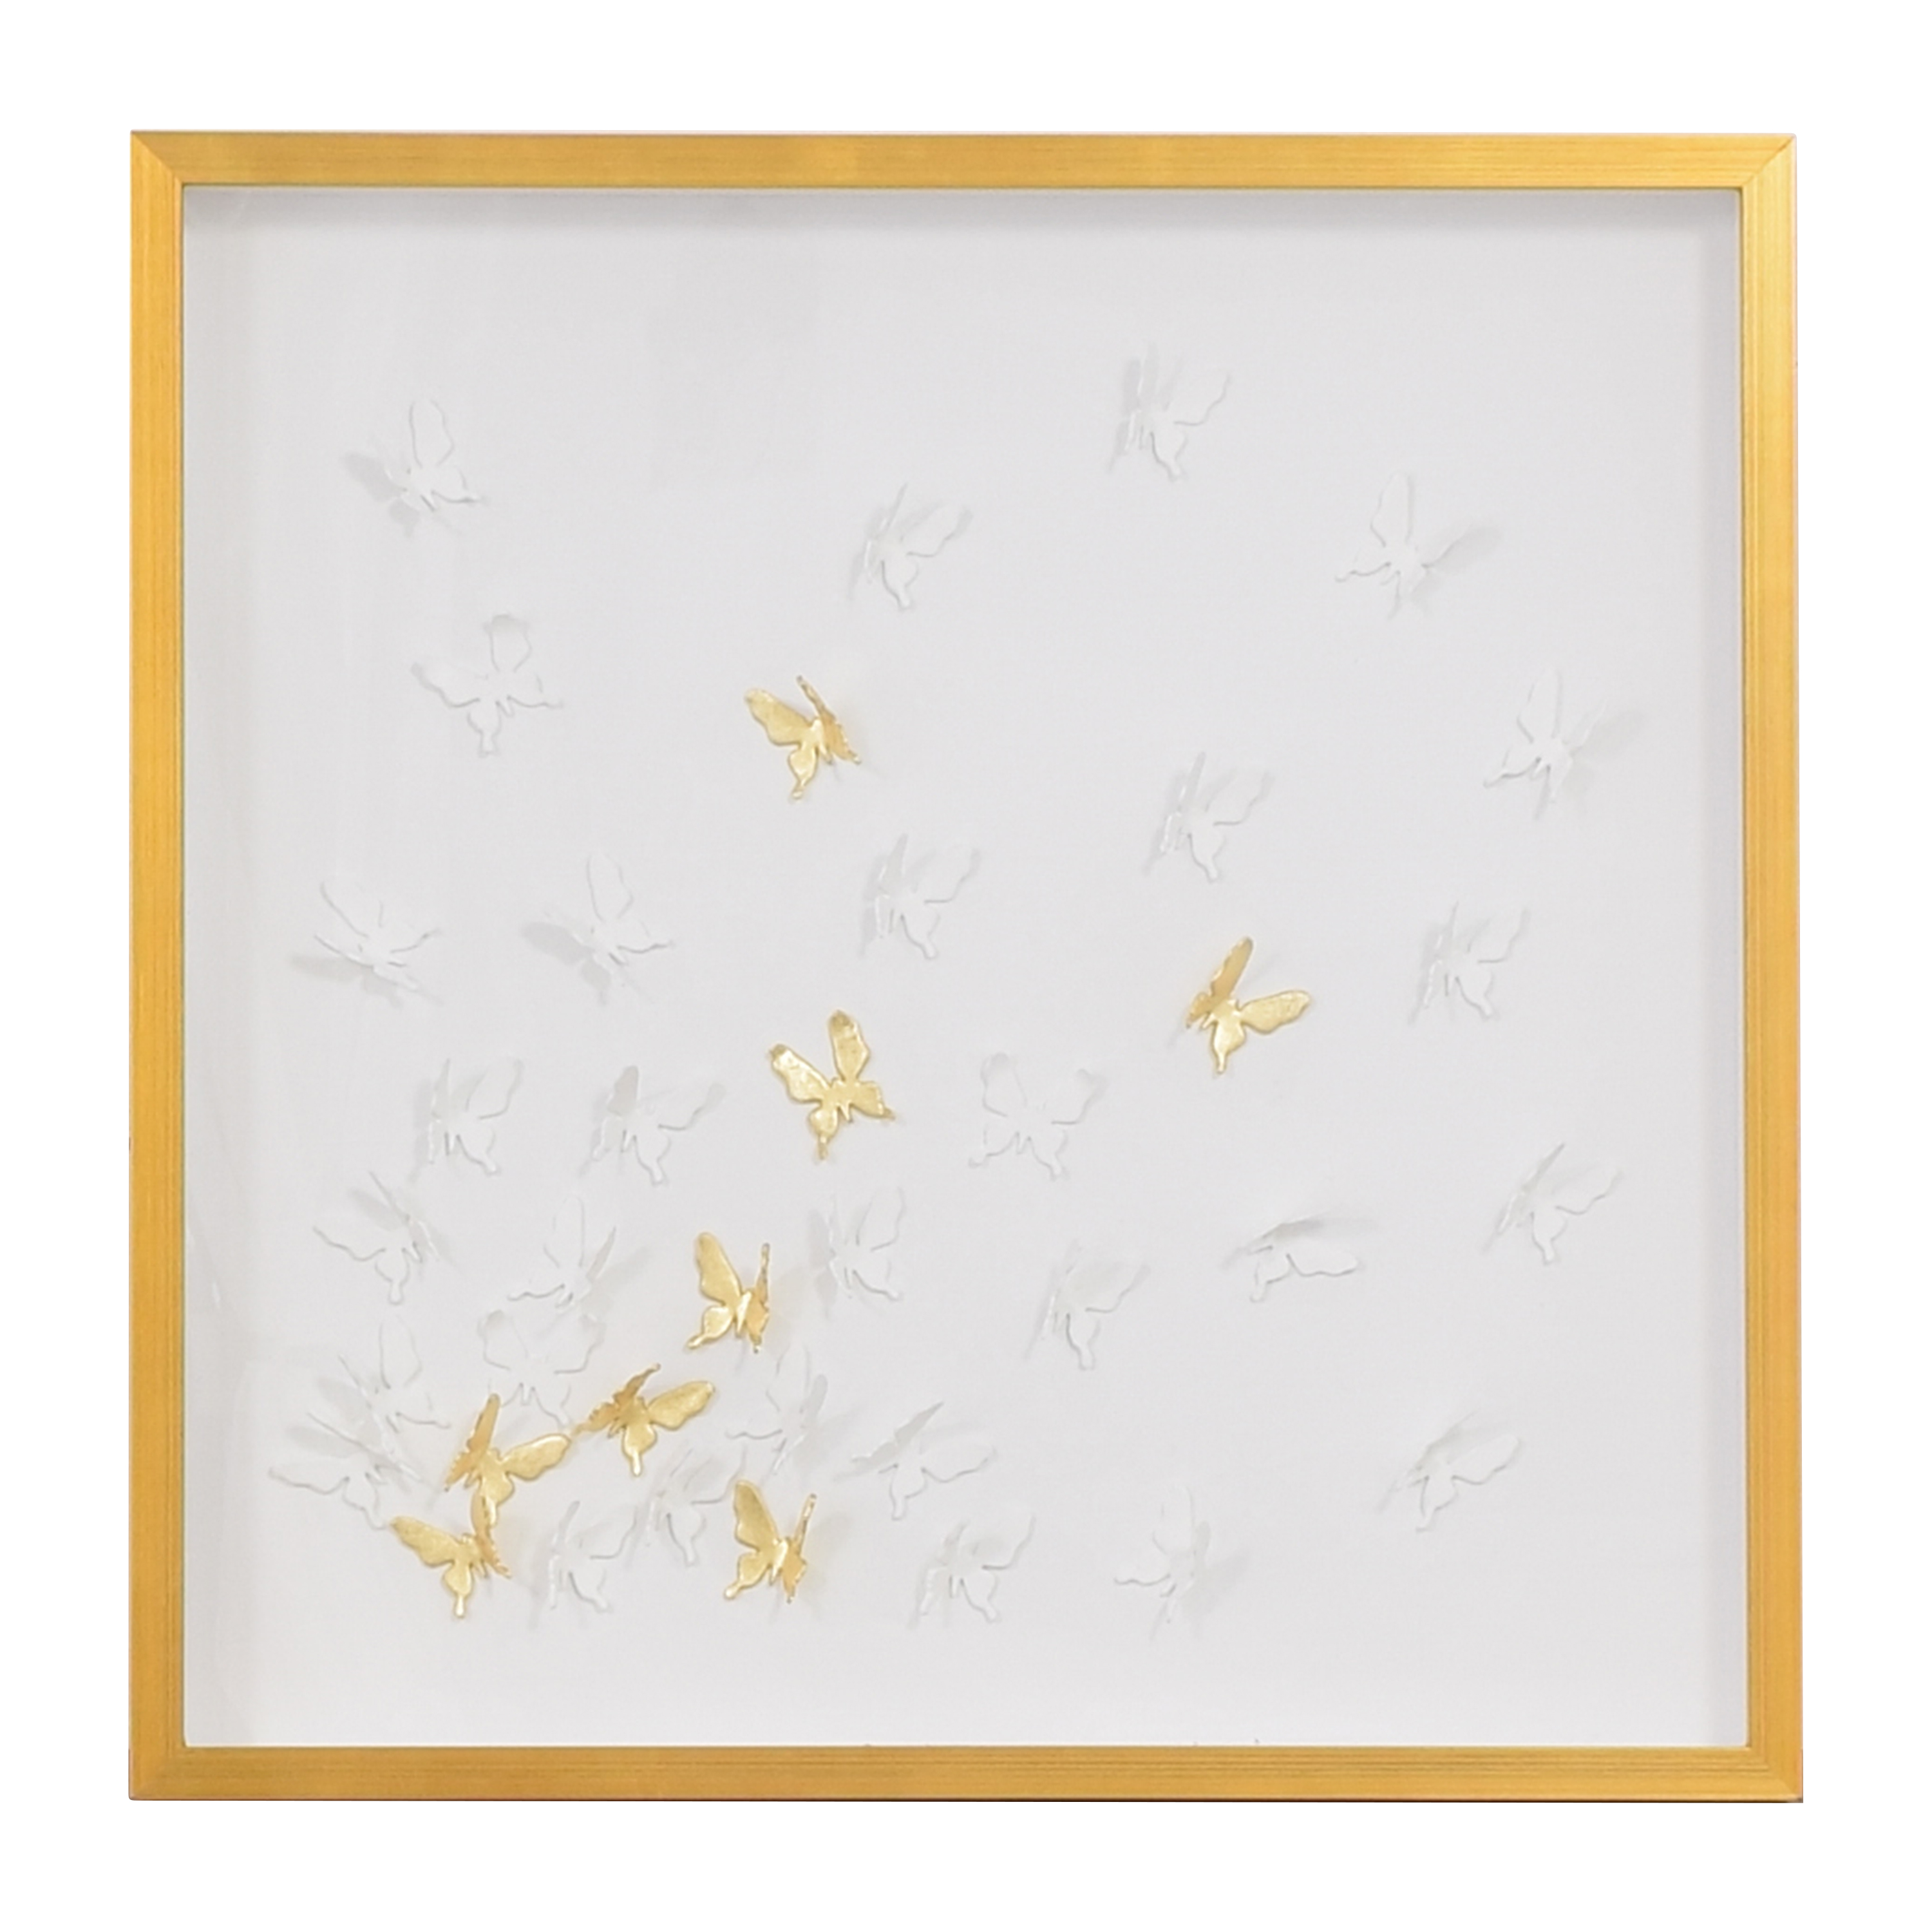 Modsy Modsy Framed Golden Butterfly III Wall Art used